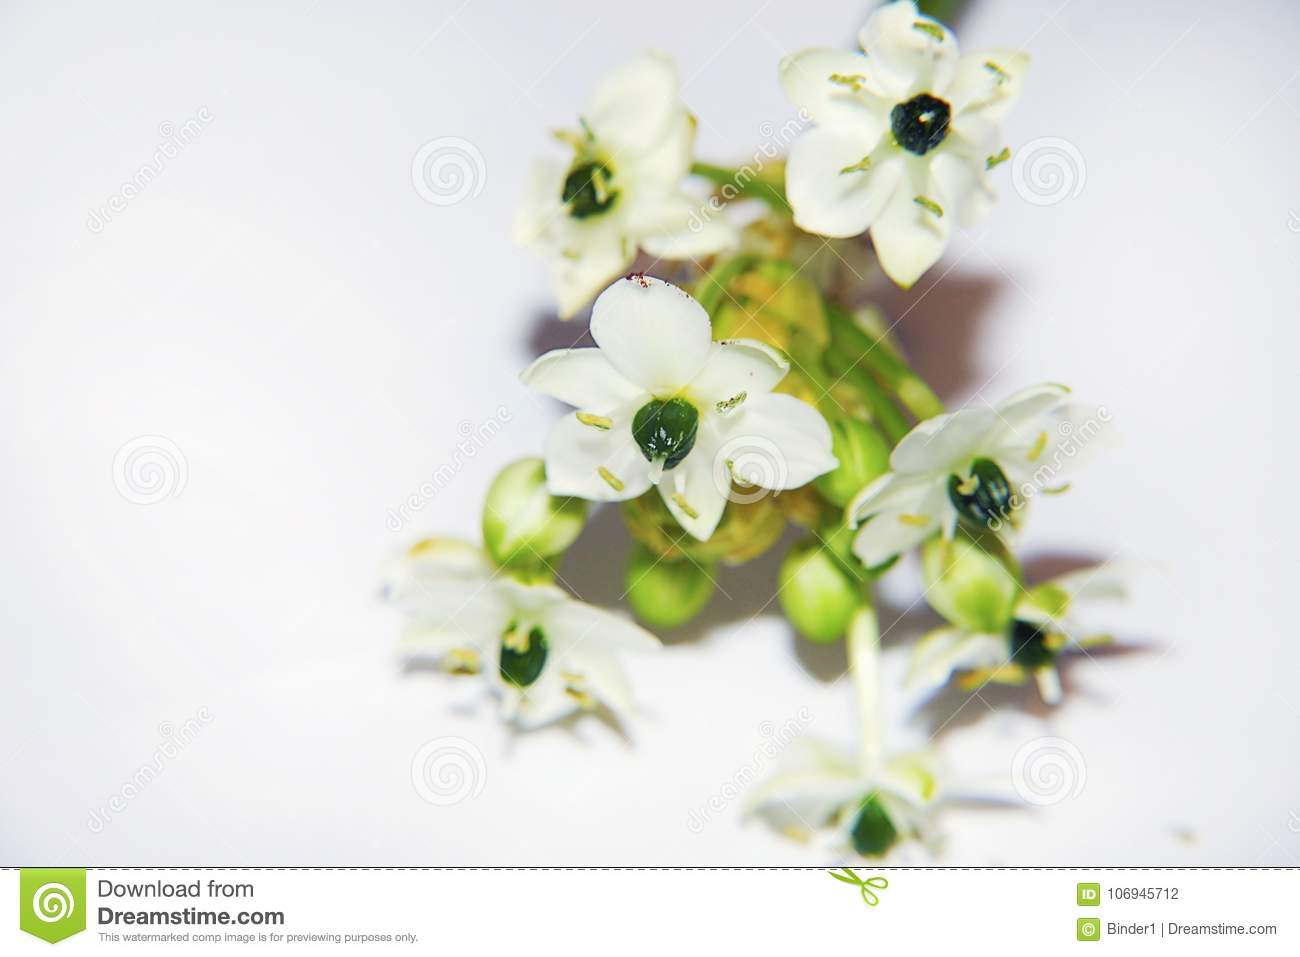 Very Pretty White Flower With The Yellow Flower Close Up Stock Photo